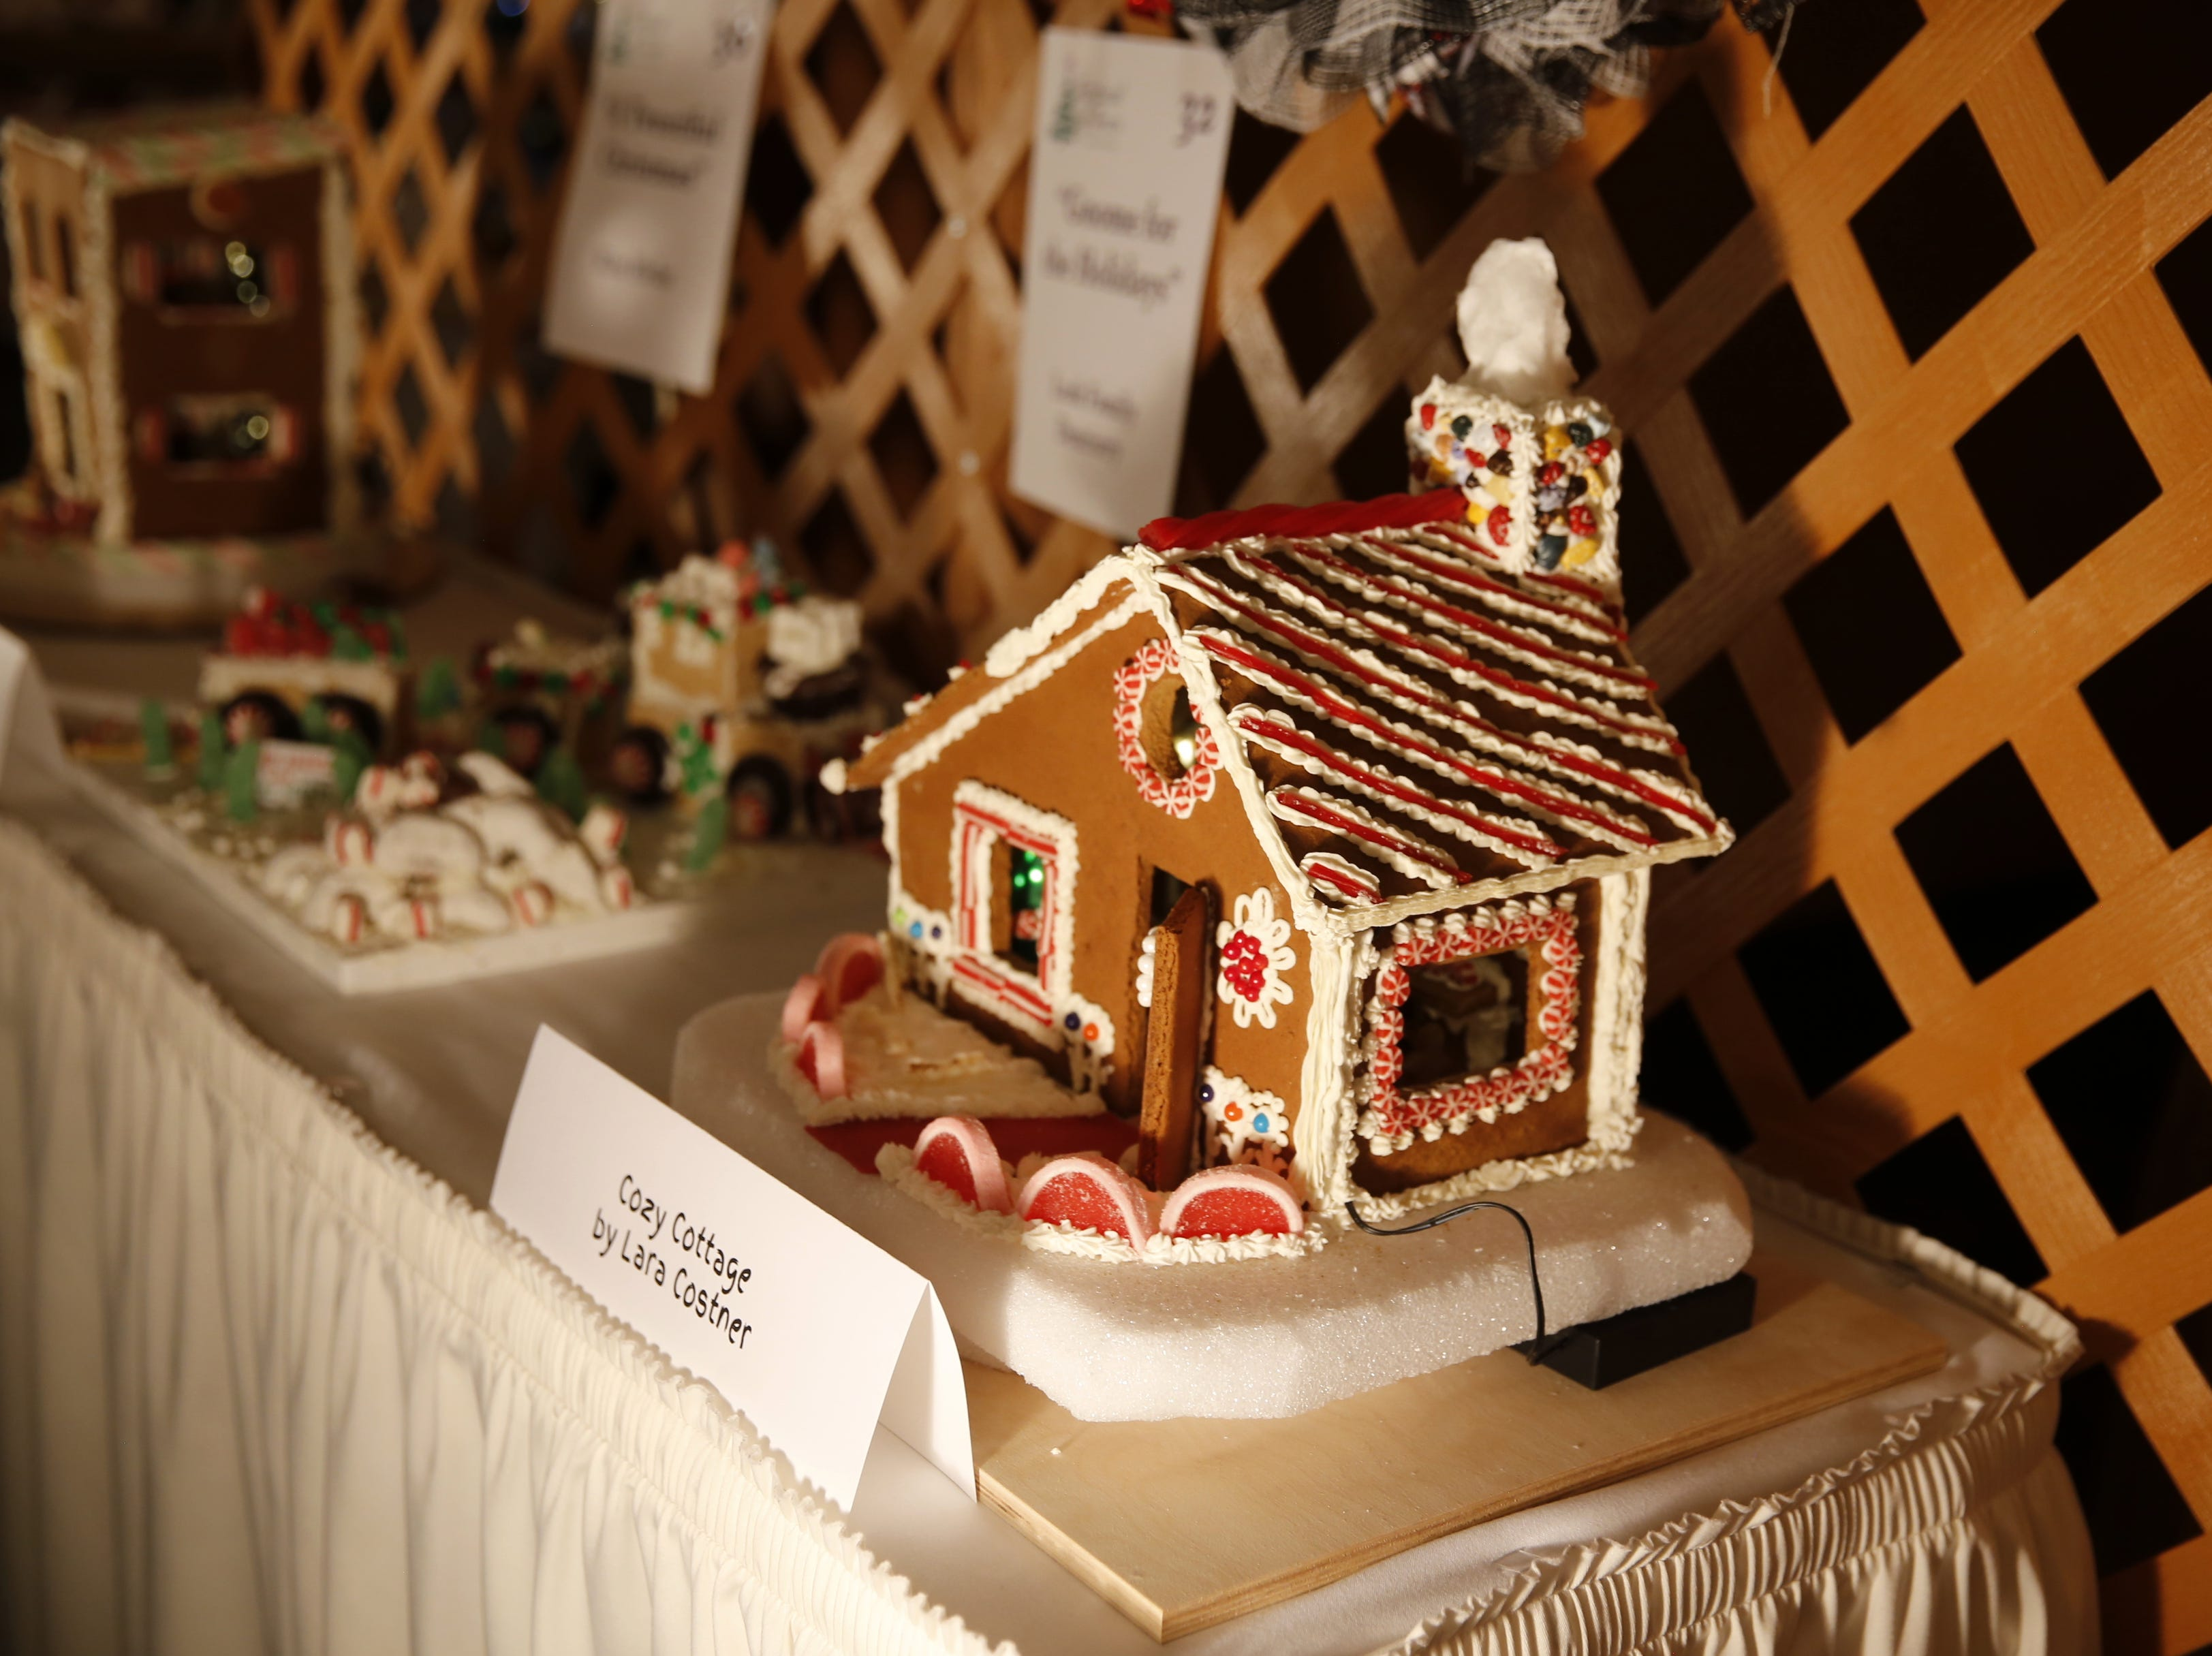 A gingerbread house is displayed on a table, Wednesday, Nov. 28, 2018, during Festival of Trees at the Farmington Civic Center.